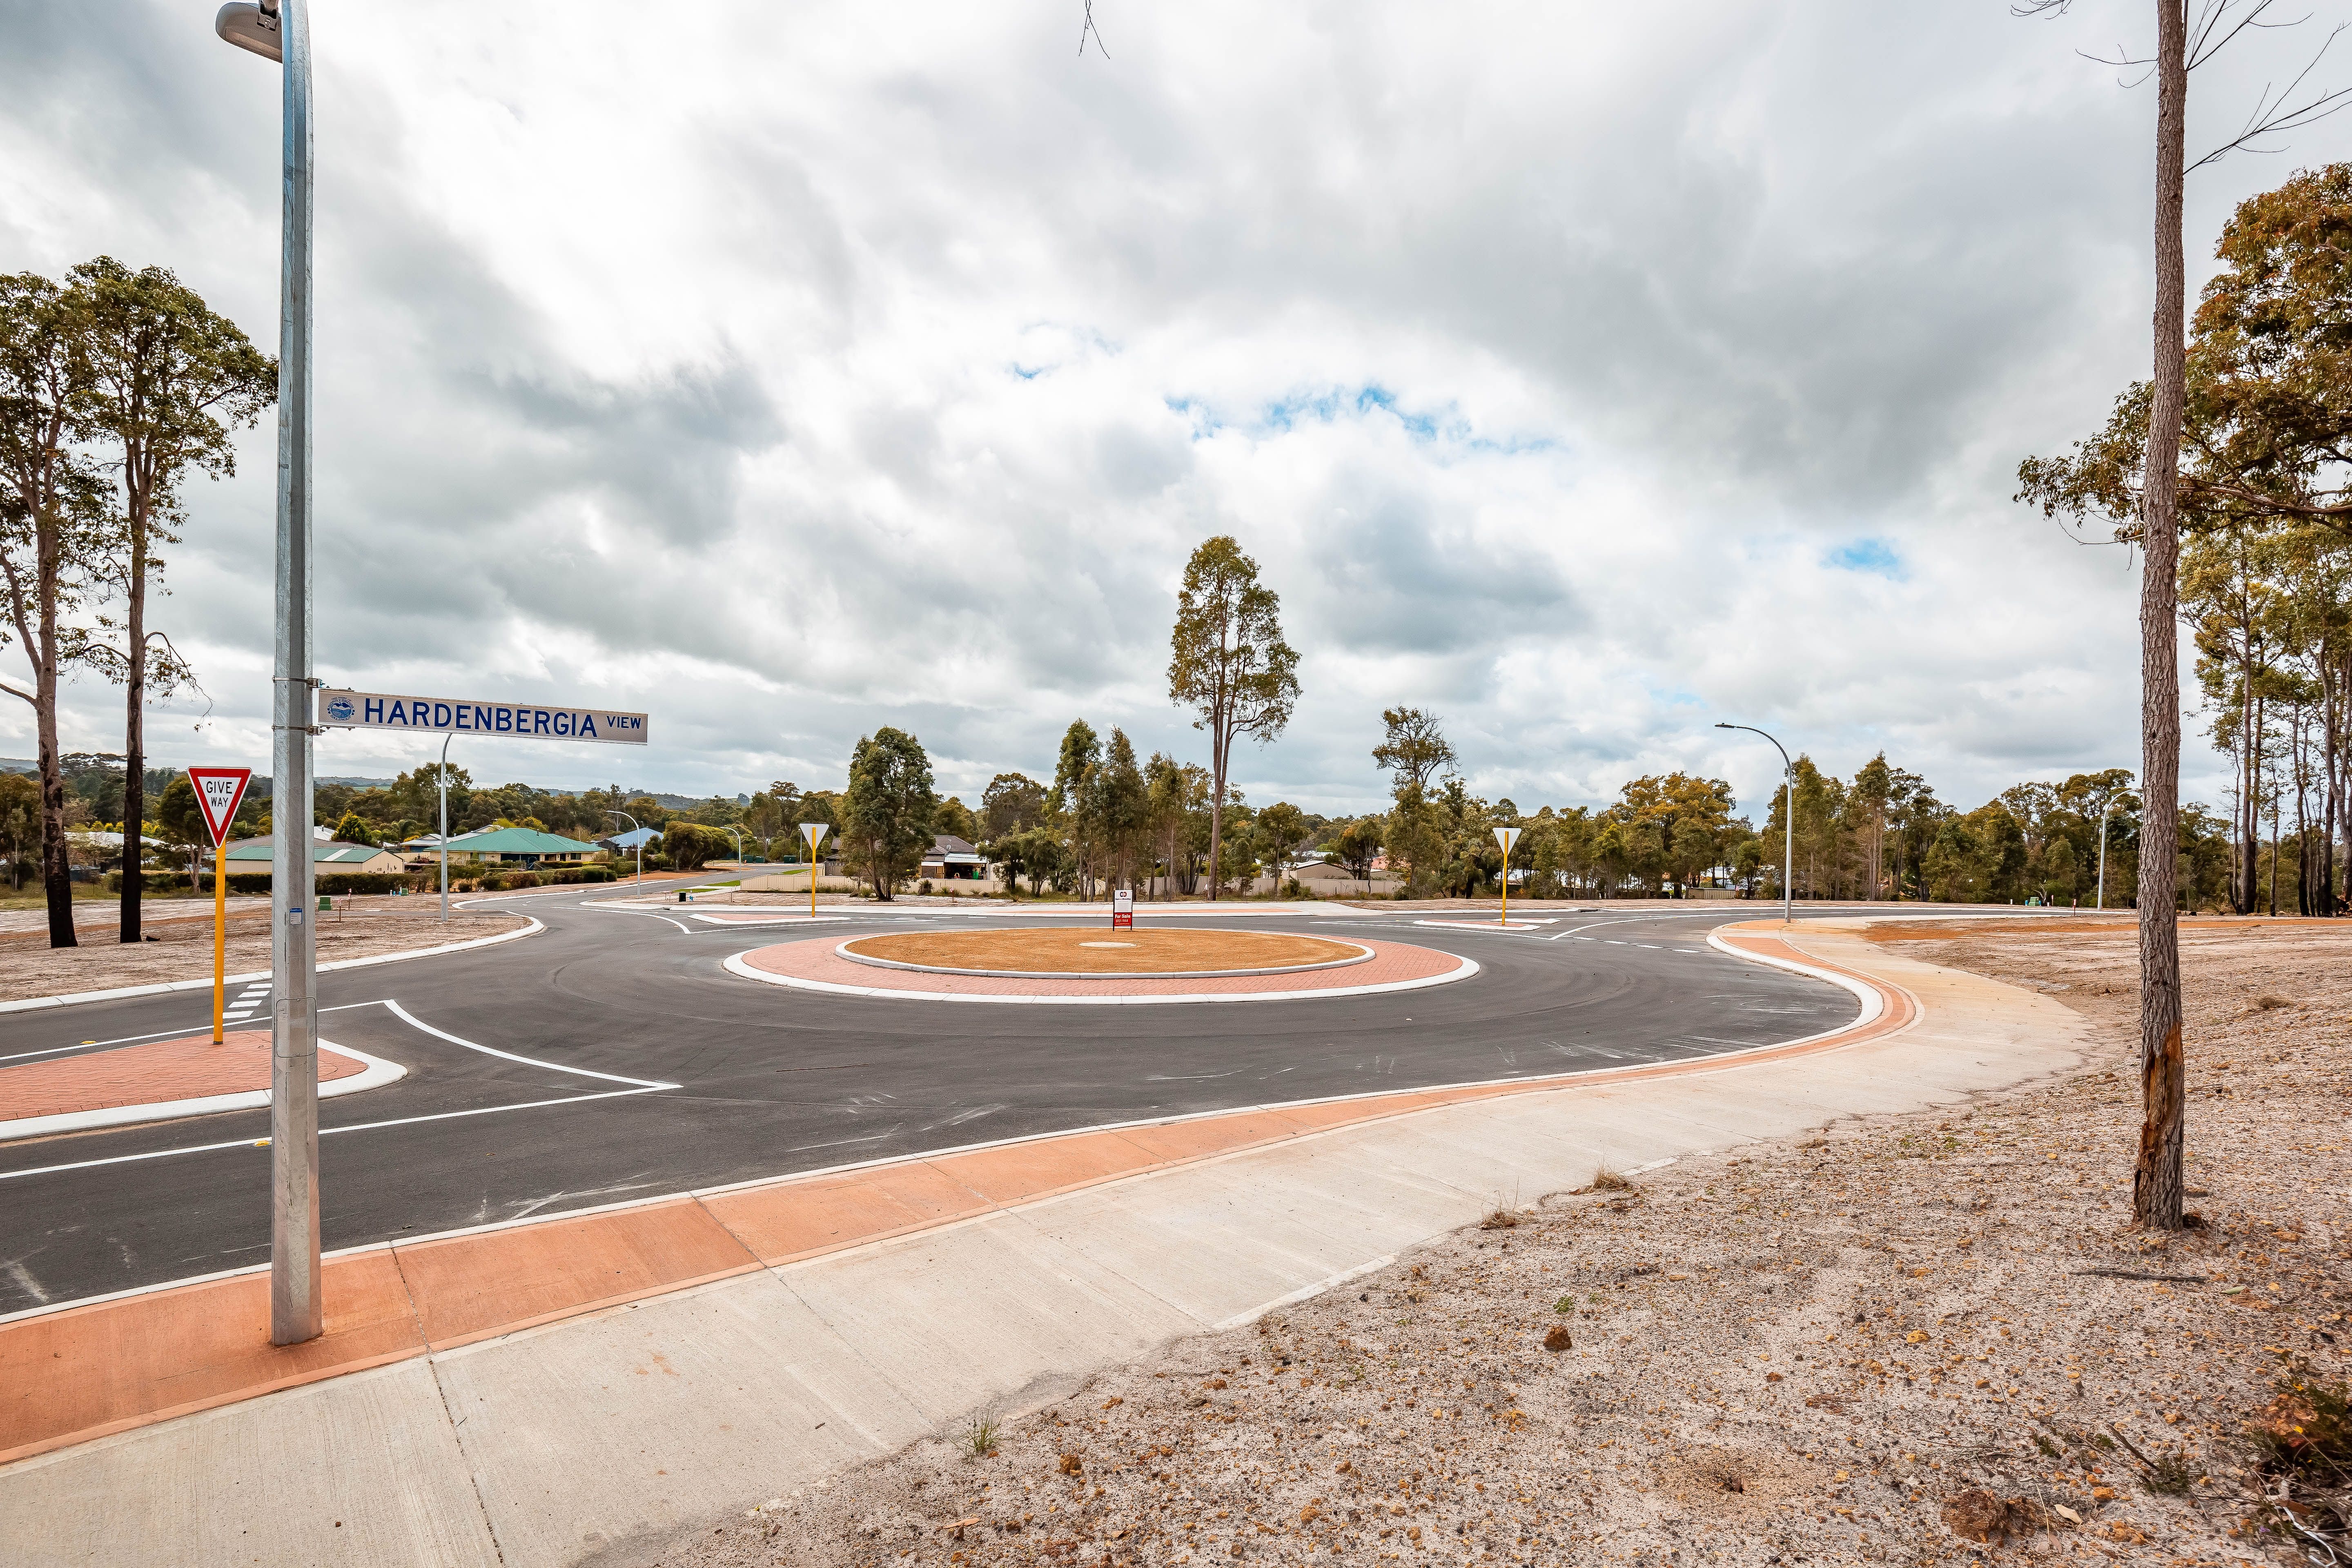 Lot/171 Hardenbergia View, Donnybrook